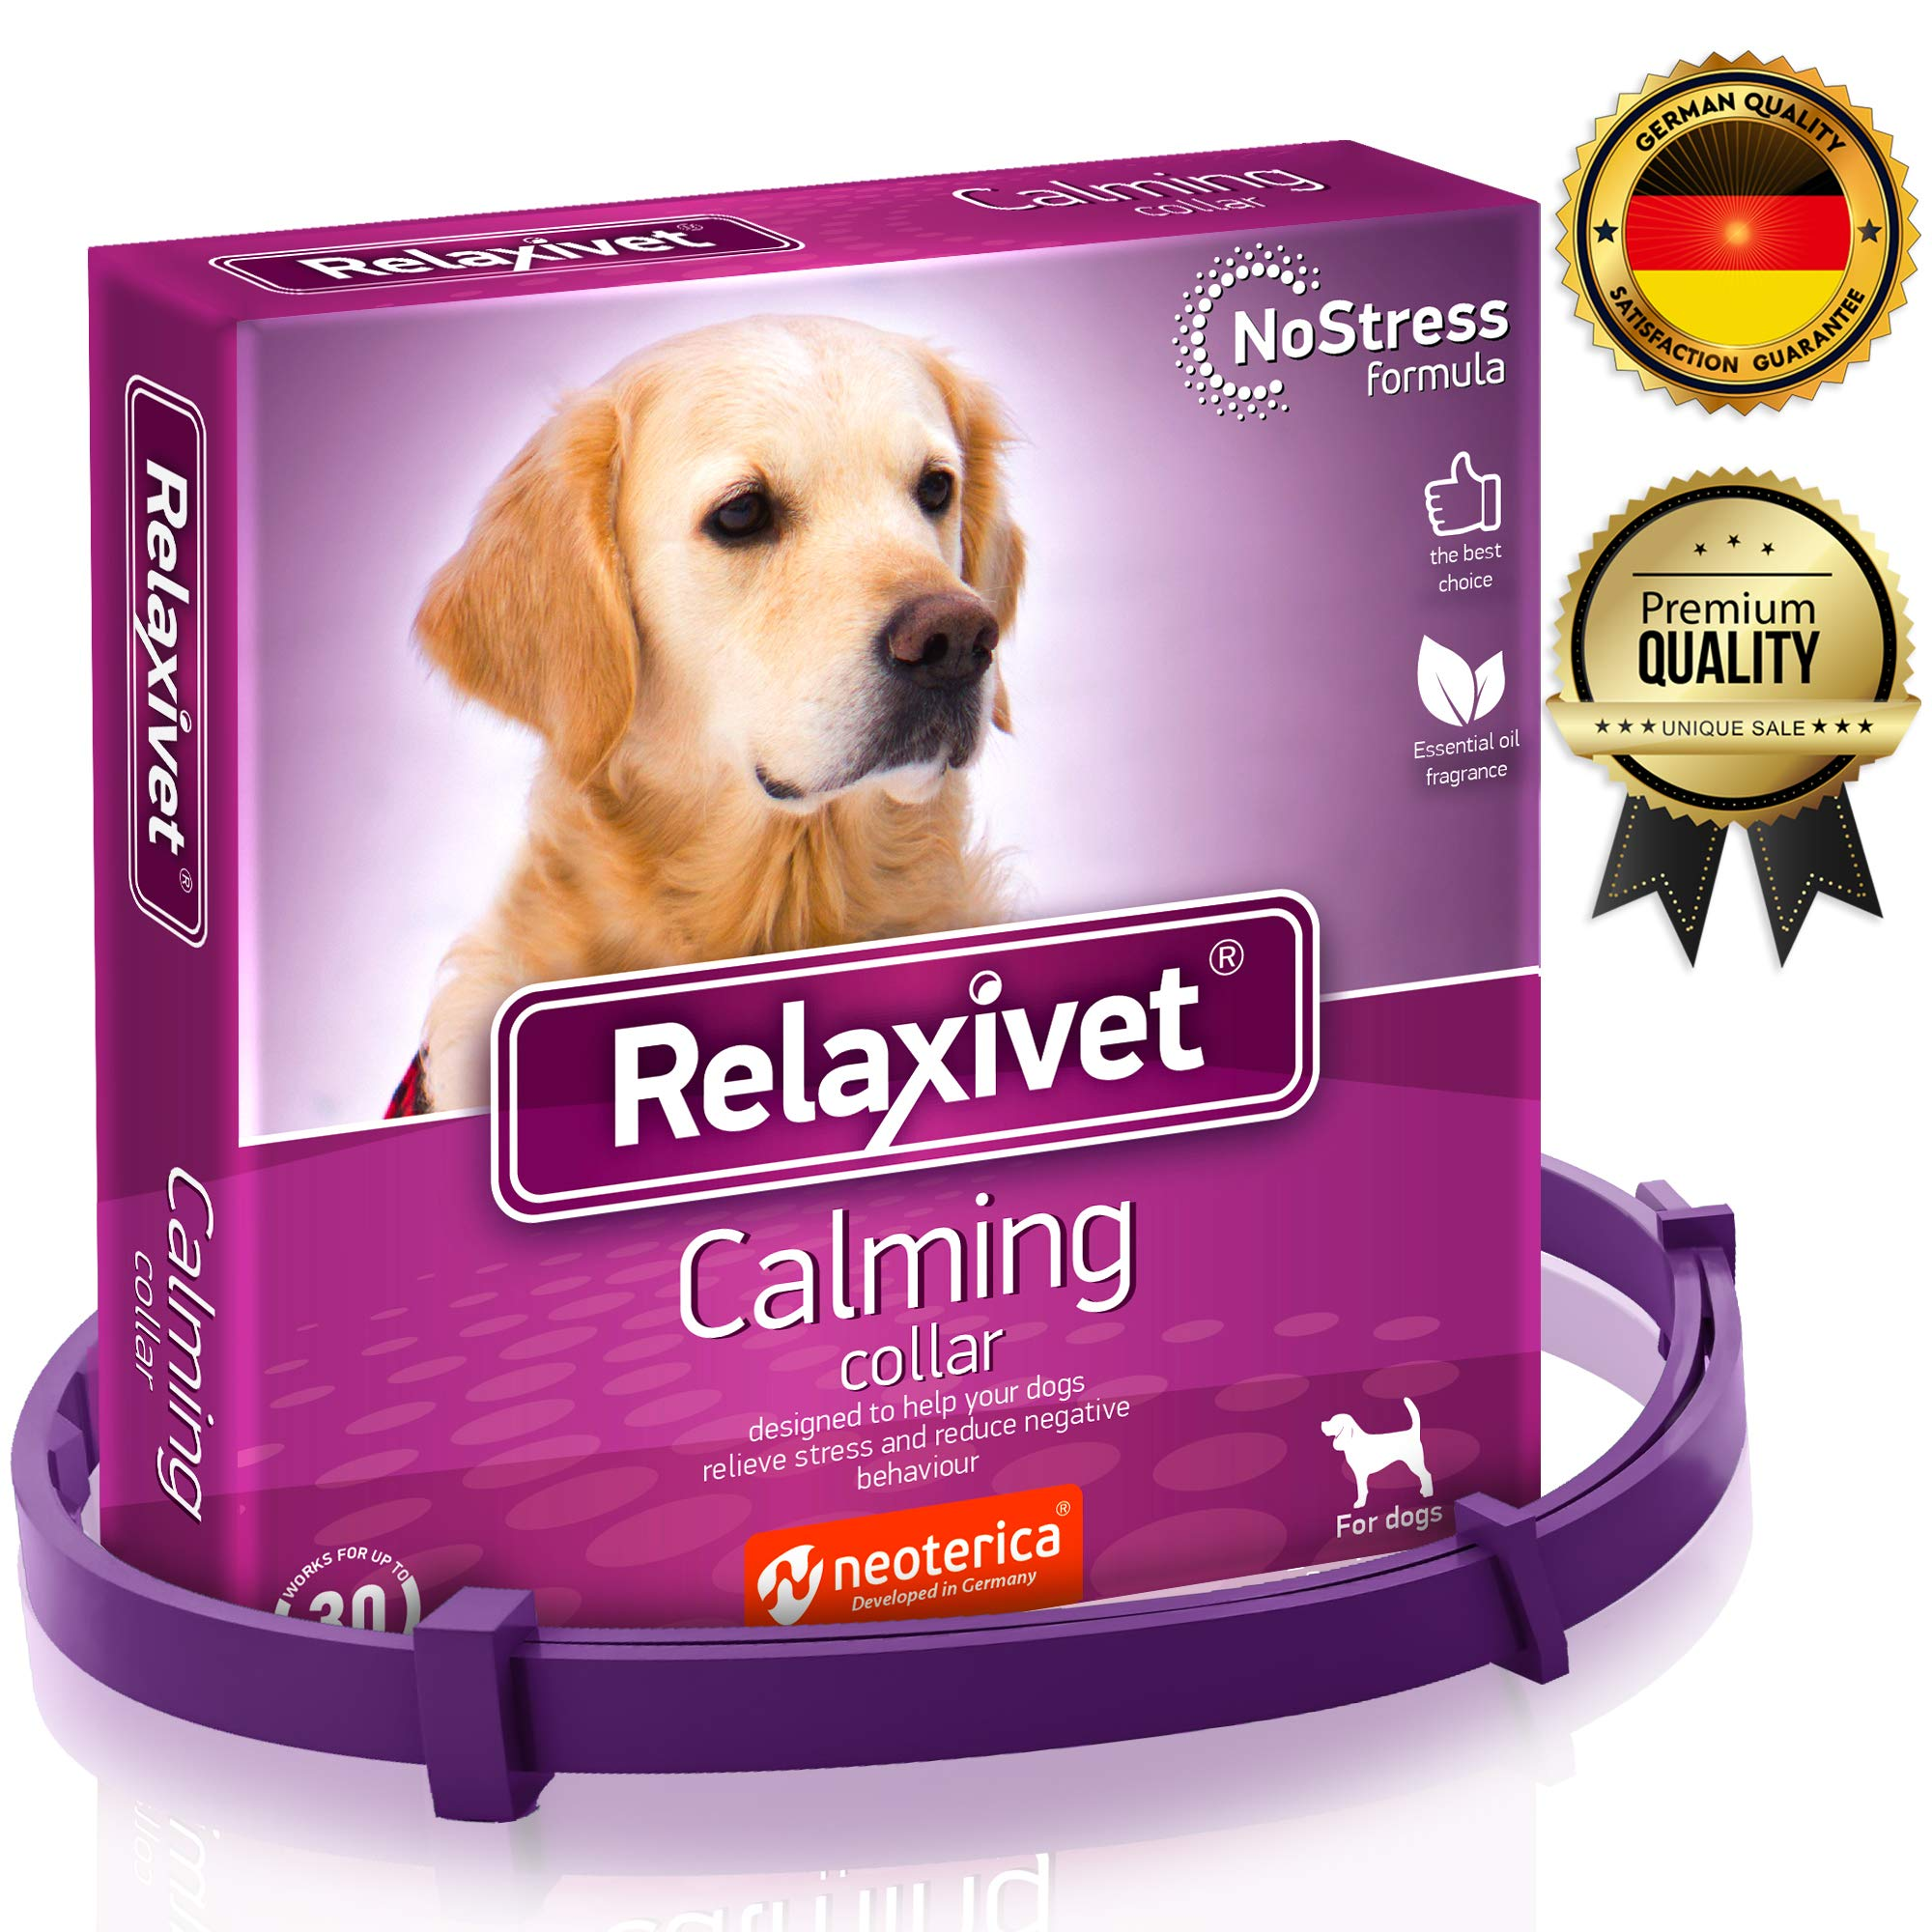 Adjustable Calming Collar for Dogs with Appeasing Effect - Dog Anxiety Relief - Anti-Anxiety Collar with Long-Lasting Calming Effect for All Sizes Dogs (26 inches) by Relaxivet